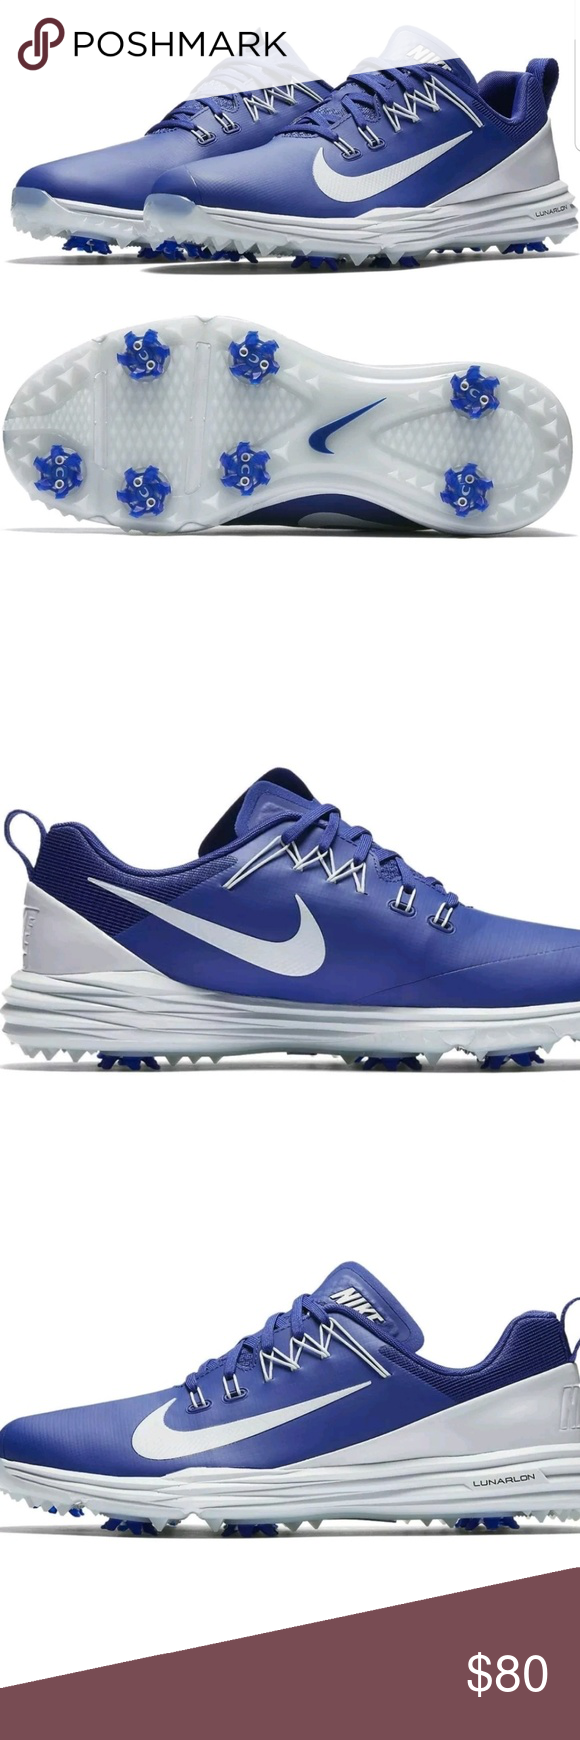 3a98aa602b8c NIKE LUNAR COMMAND 2 GOLF SHOES YOU ARE LOOKING AT A NEW PAIR OF MEN S NIKE